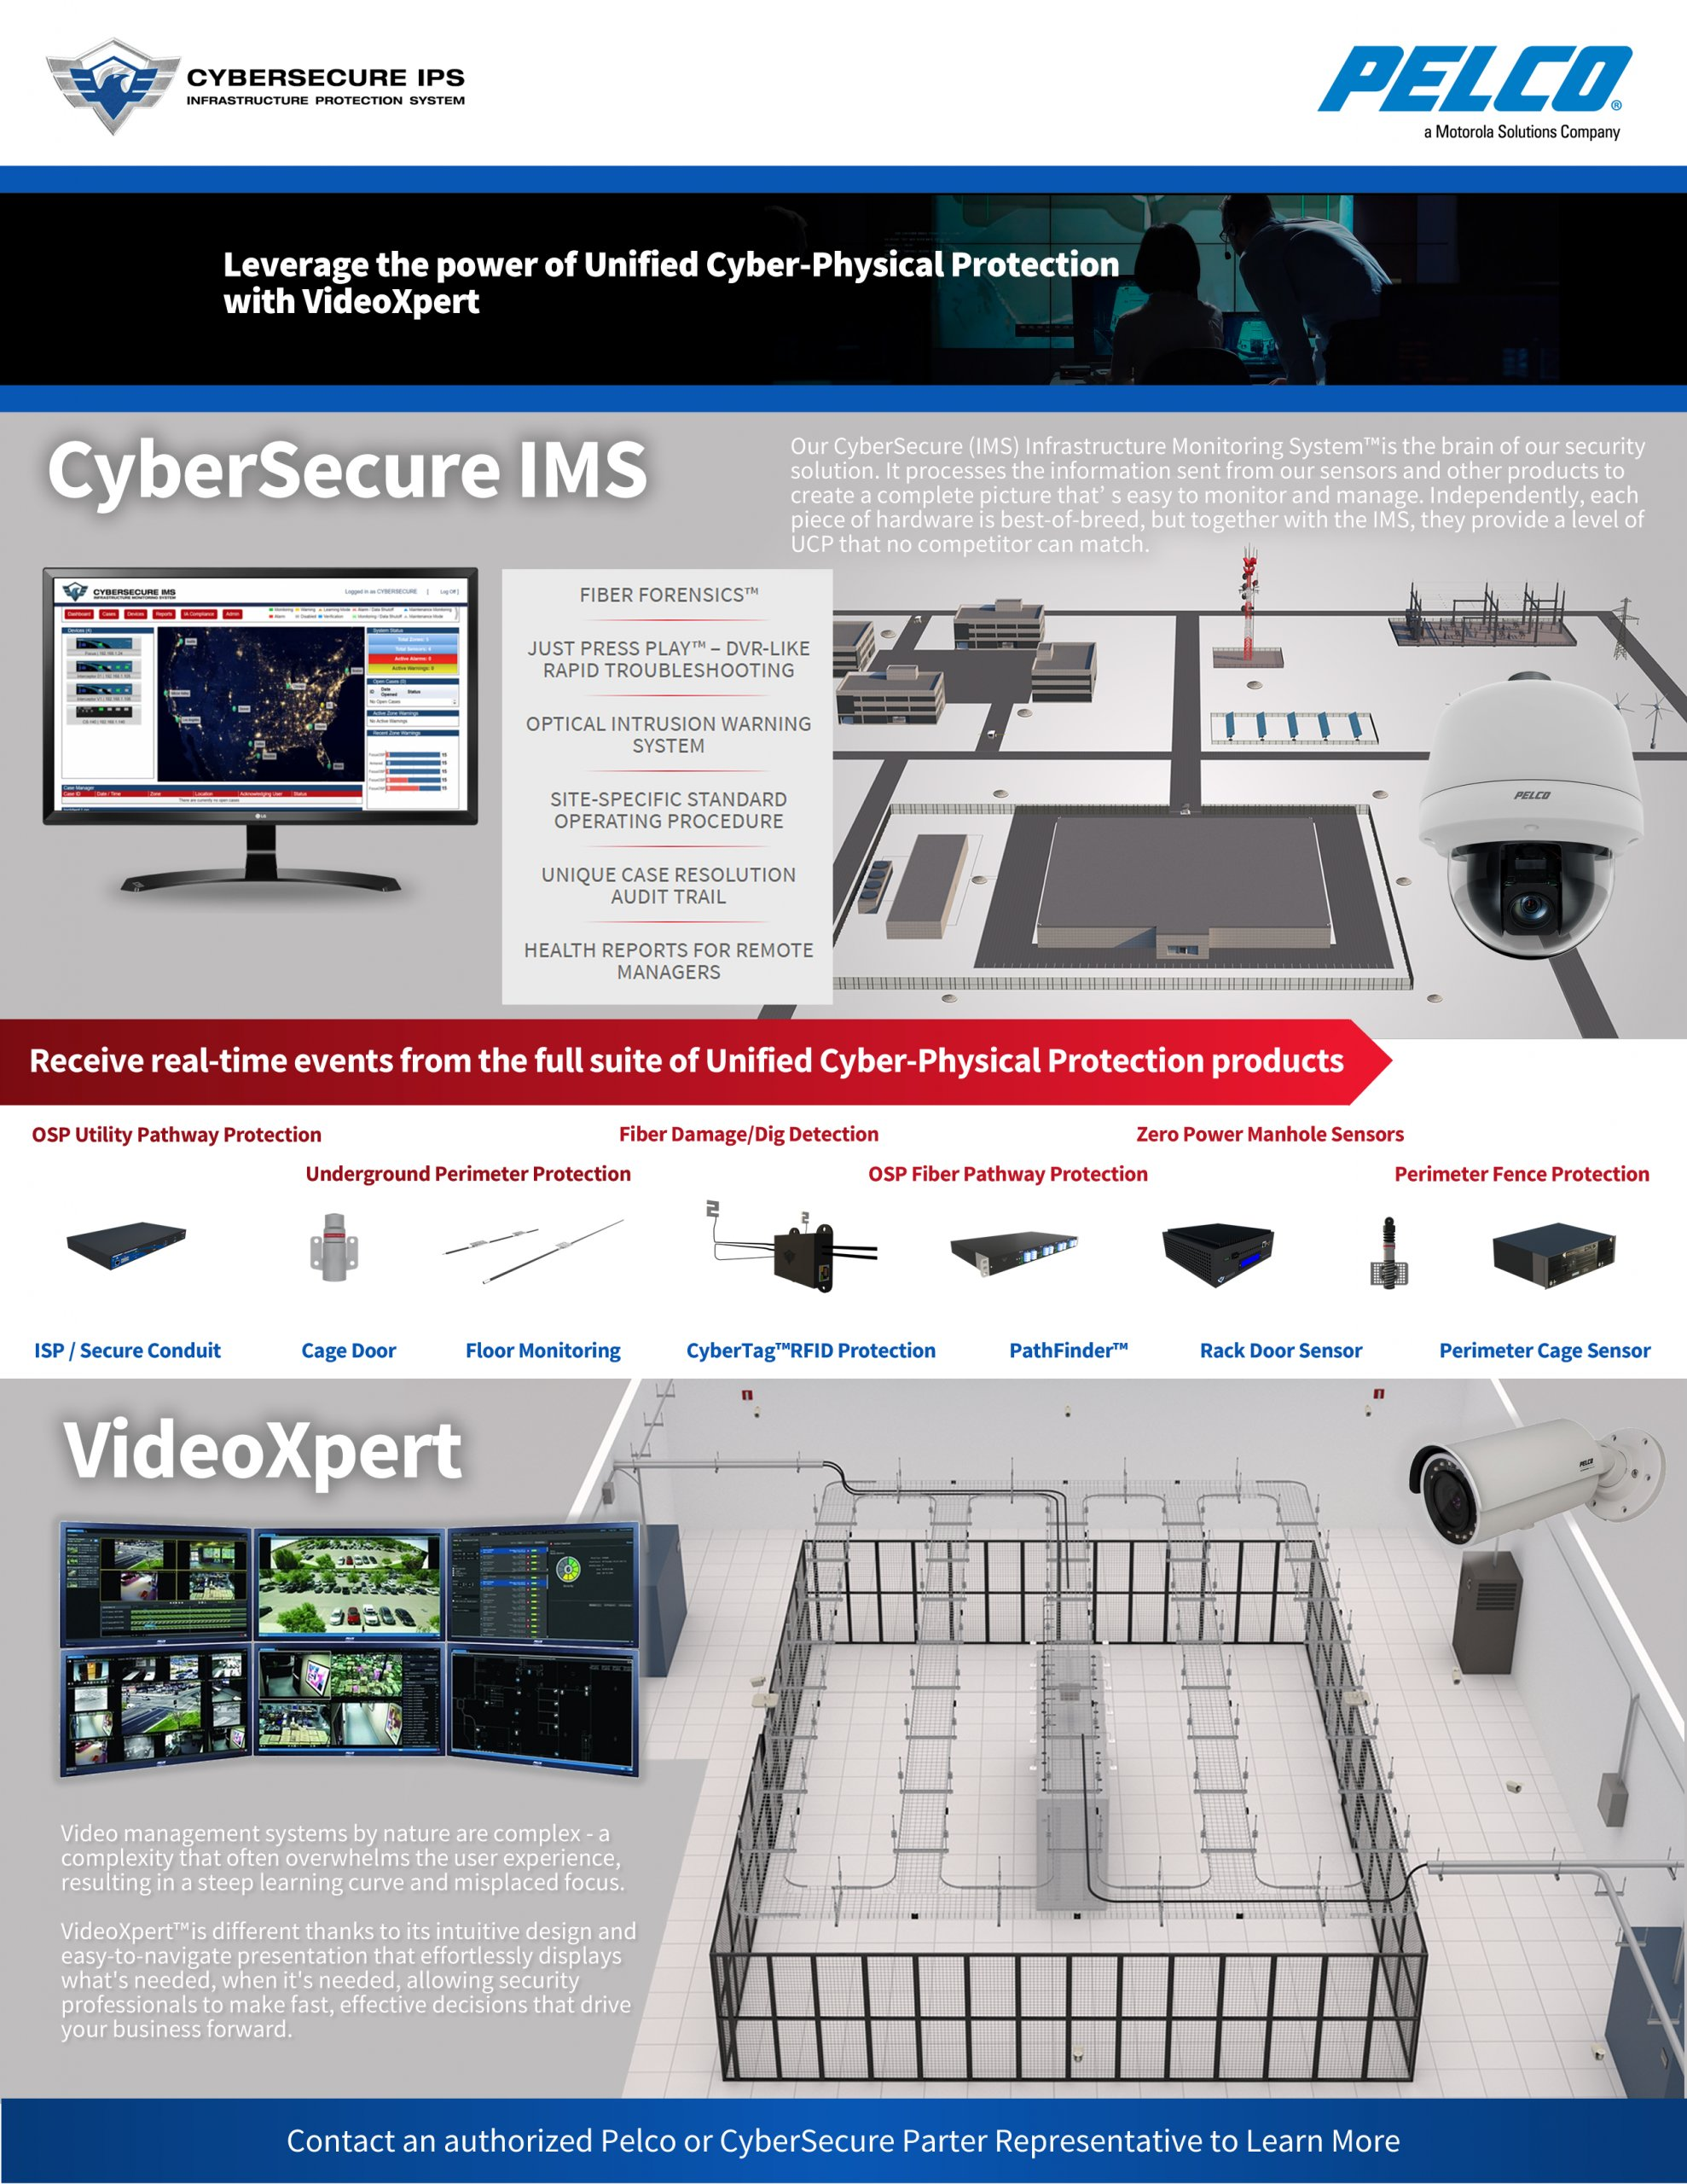 CS IMS Pelco One Pager v1.1